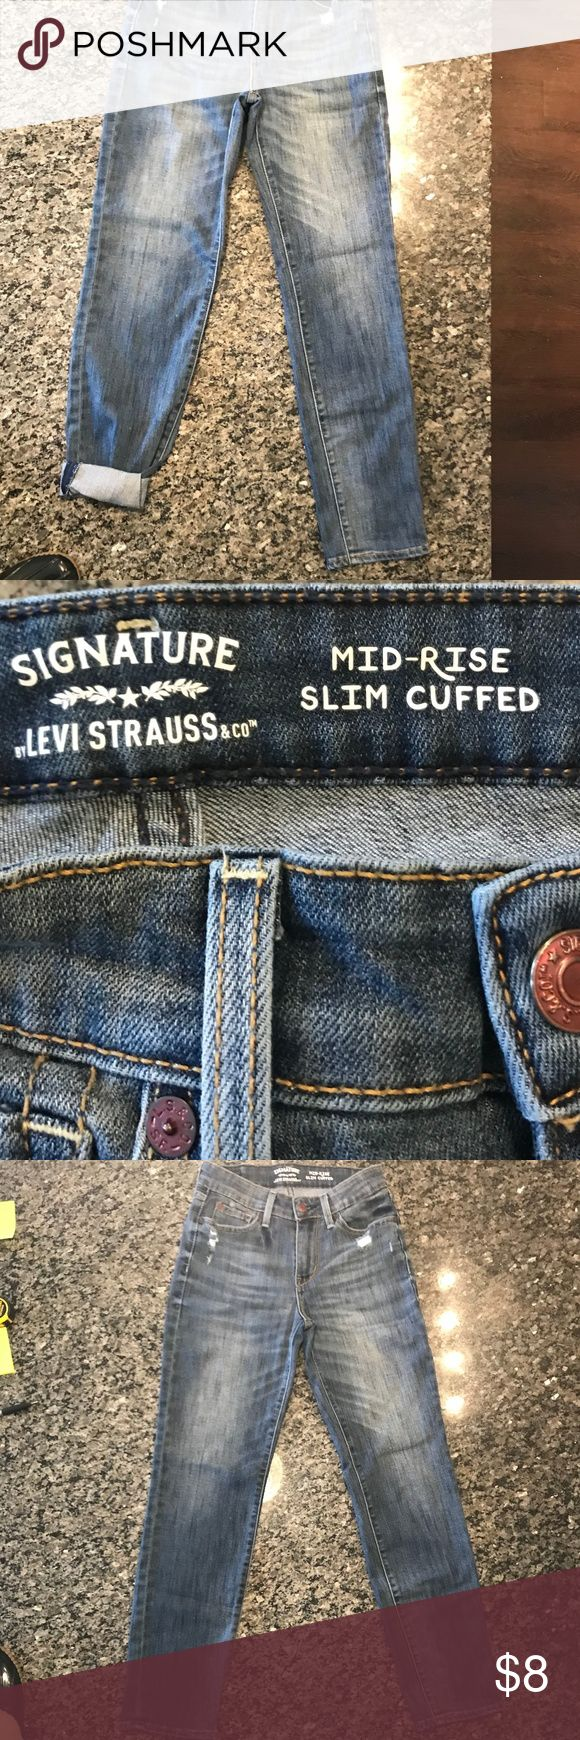 "Levi Strauss & Co Signature Mid-rise Jeans NWOT Levi Strauss & Co Signature Mid-rise Cuffed Jeans Super soft, super stretchy fabric keeps its shape all day Authentic vintage finishing and fabric character Mid-Rise 5 pocket styling Slim through hip and thigh Adjustable double cuff Size: 26 Measurements: 13"" Waist flat across, 27"" Inseam as not cuffed Signature by Levi Strauss Jeans"